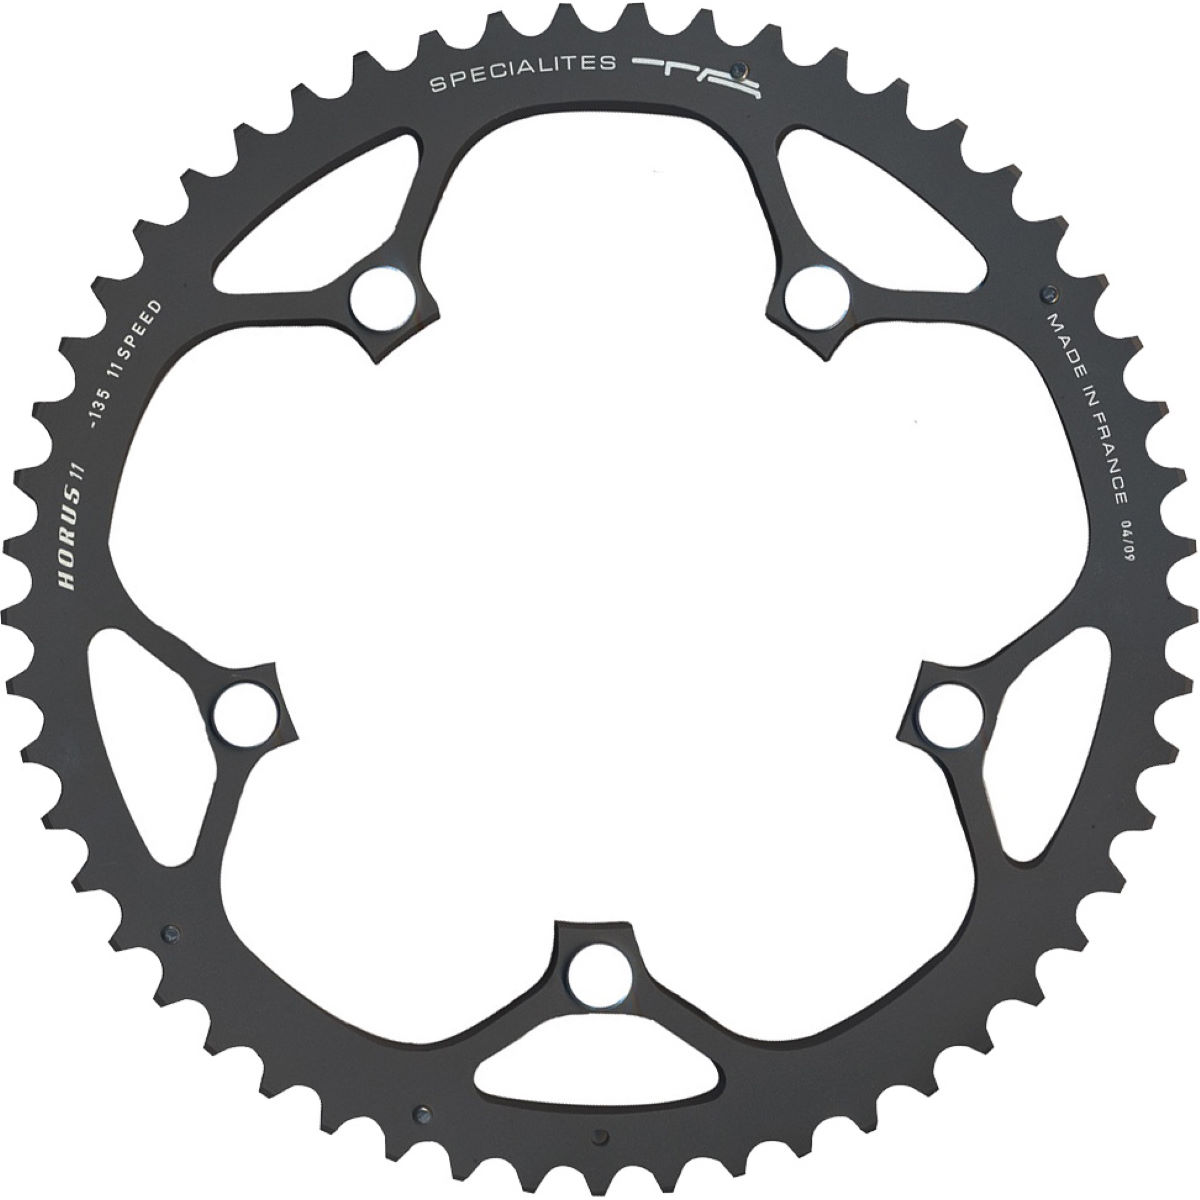 TA TA 135 PCD Horus 11 Campagnolo Outer Chainring   Chain Rings